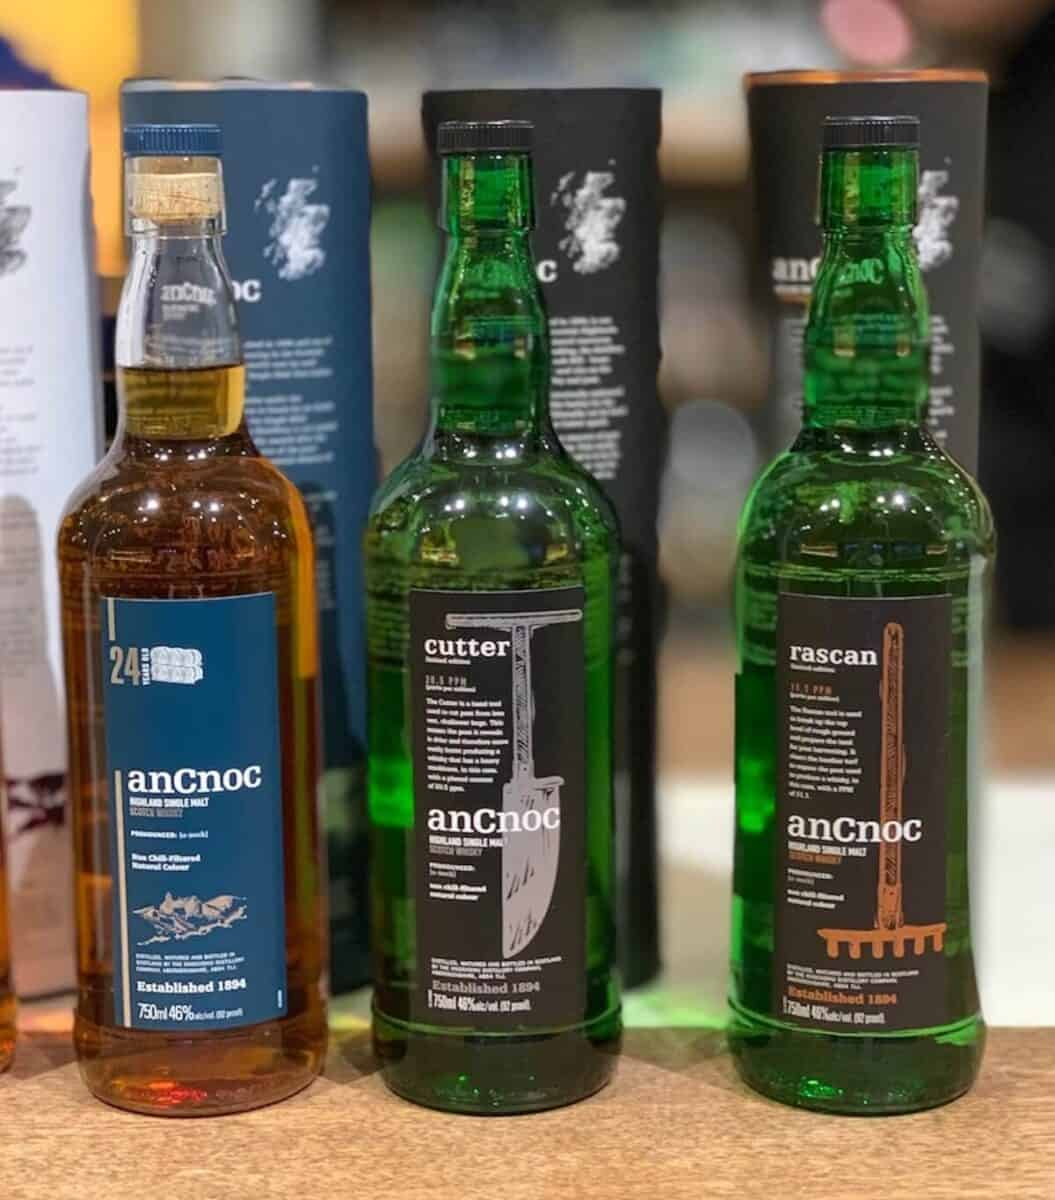 anCnoc rascan, cutter, and 24 in bottles on a counter.